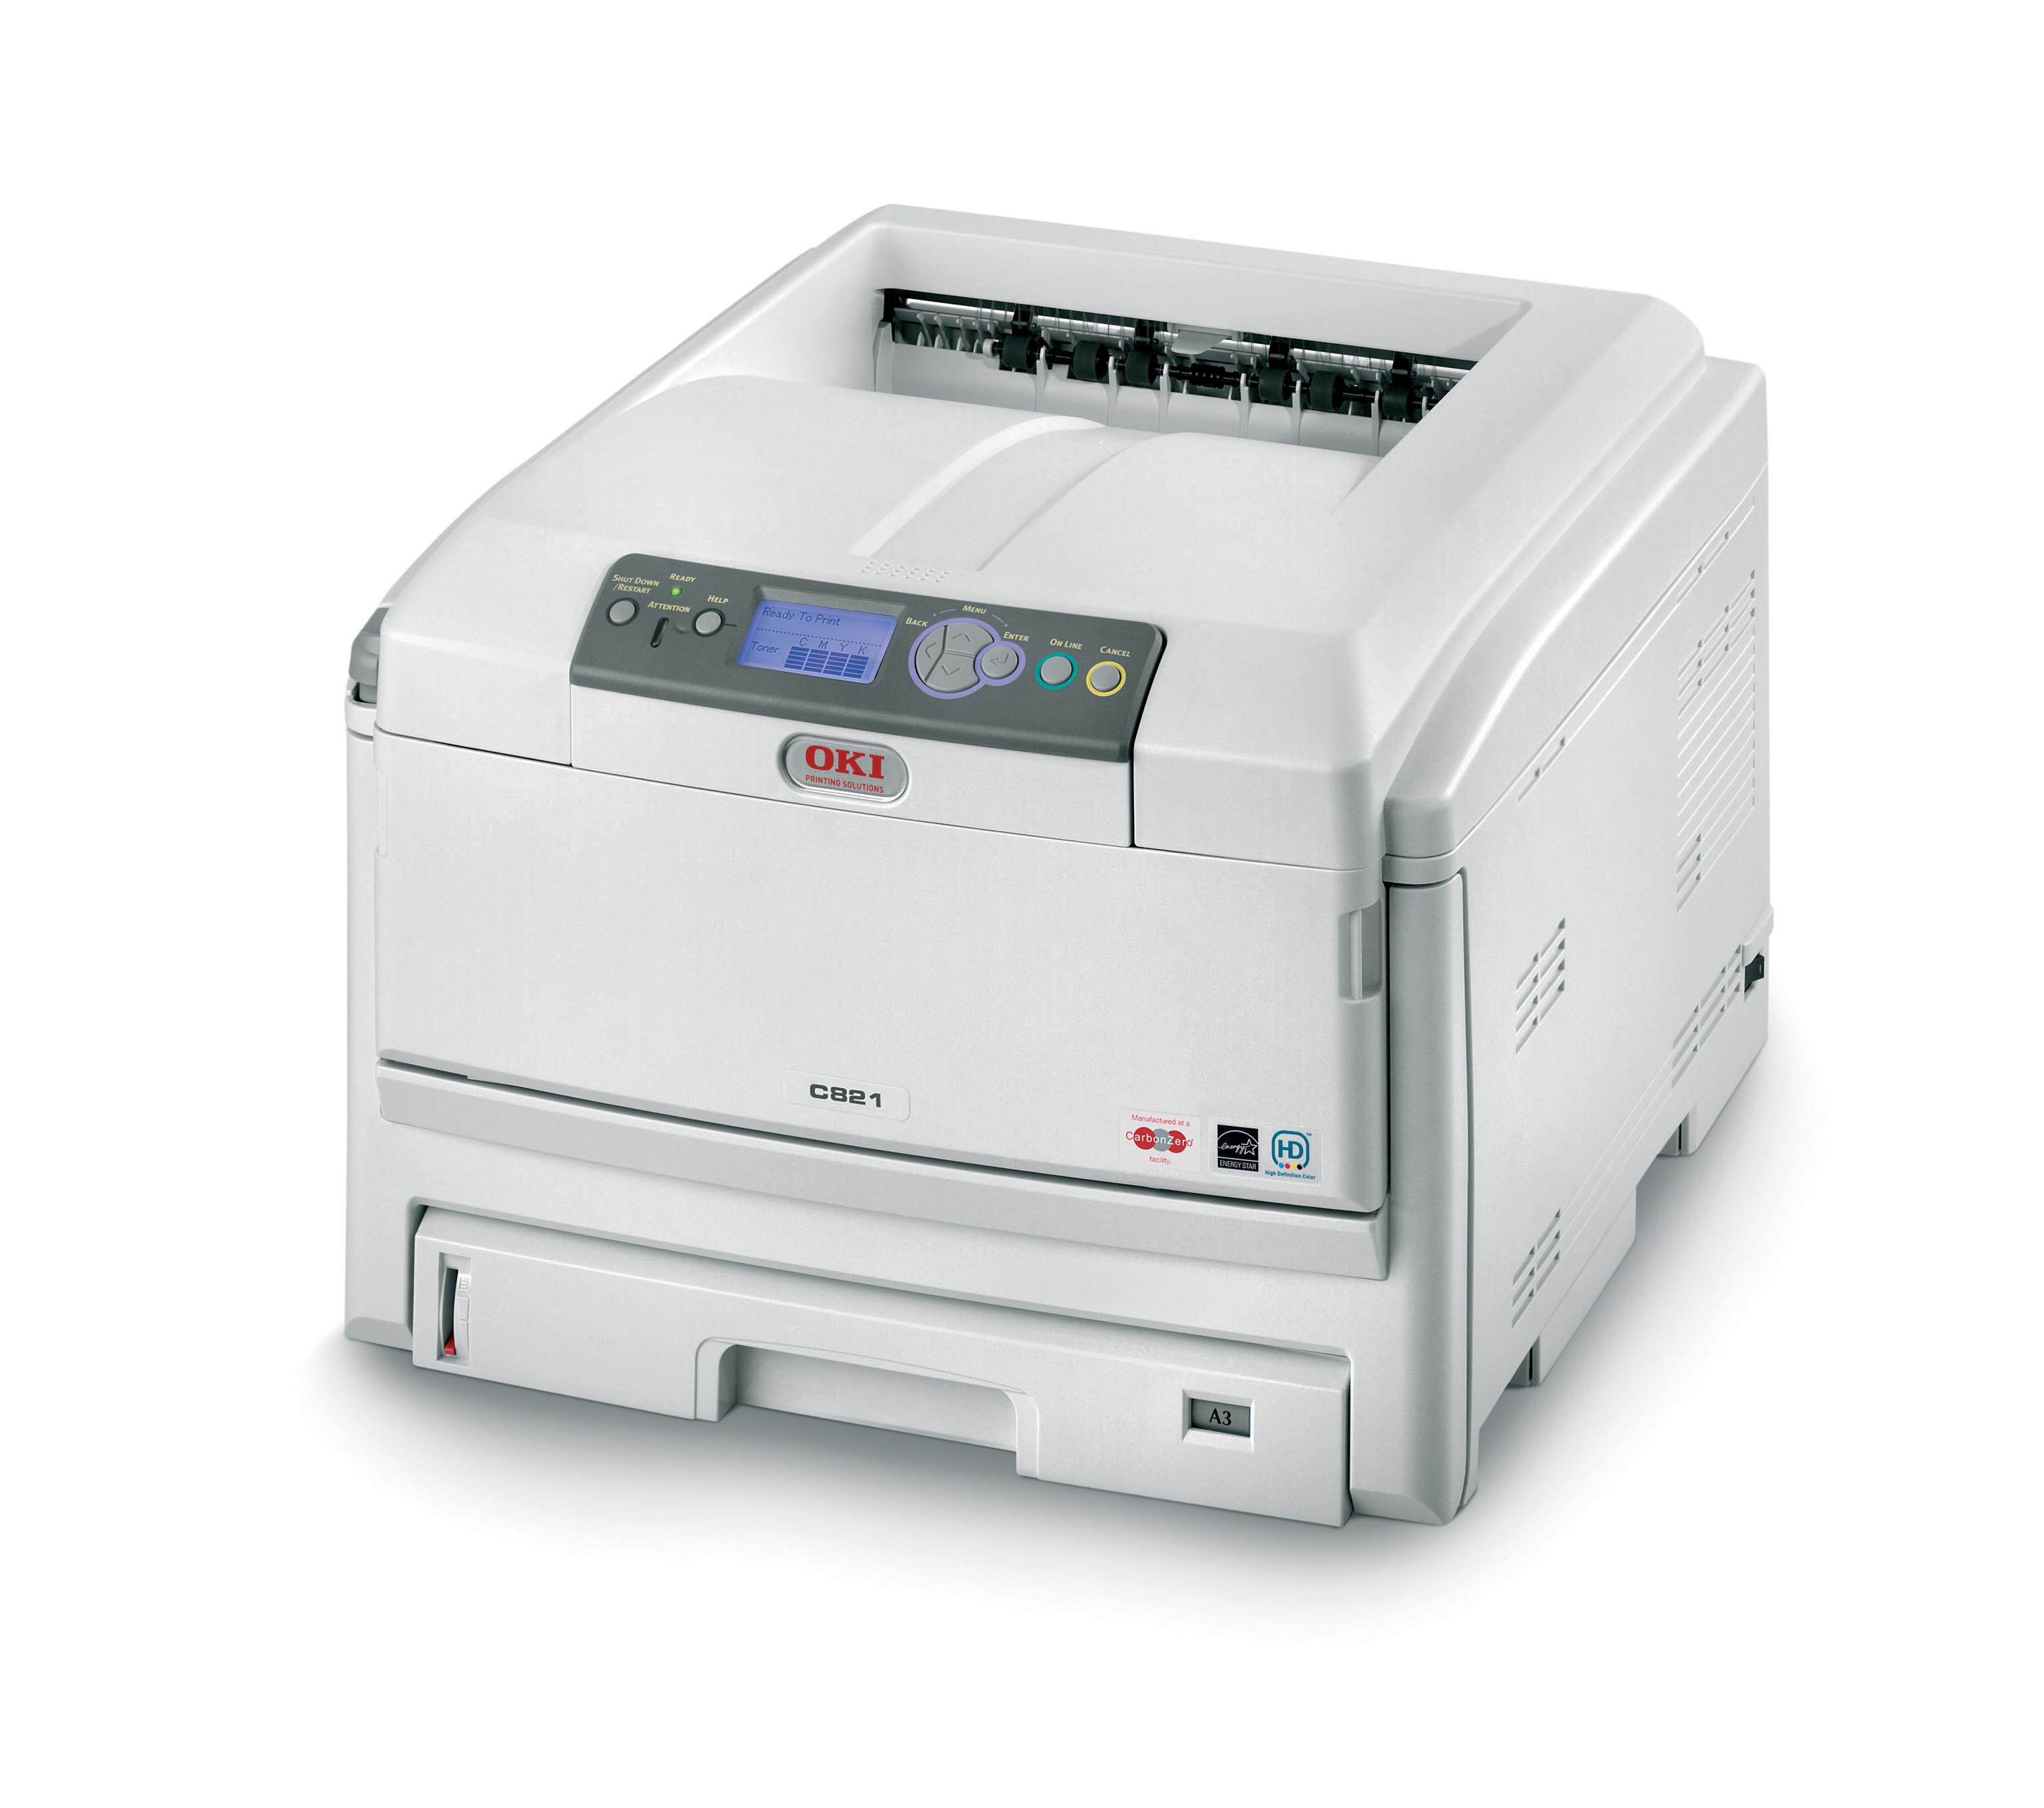 Oki C821n Colour Laser Printer 01289001 - Refurbished